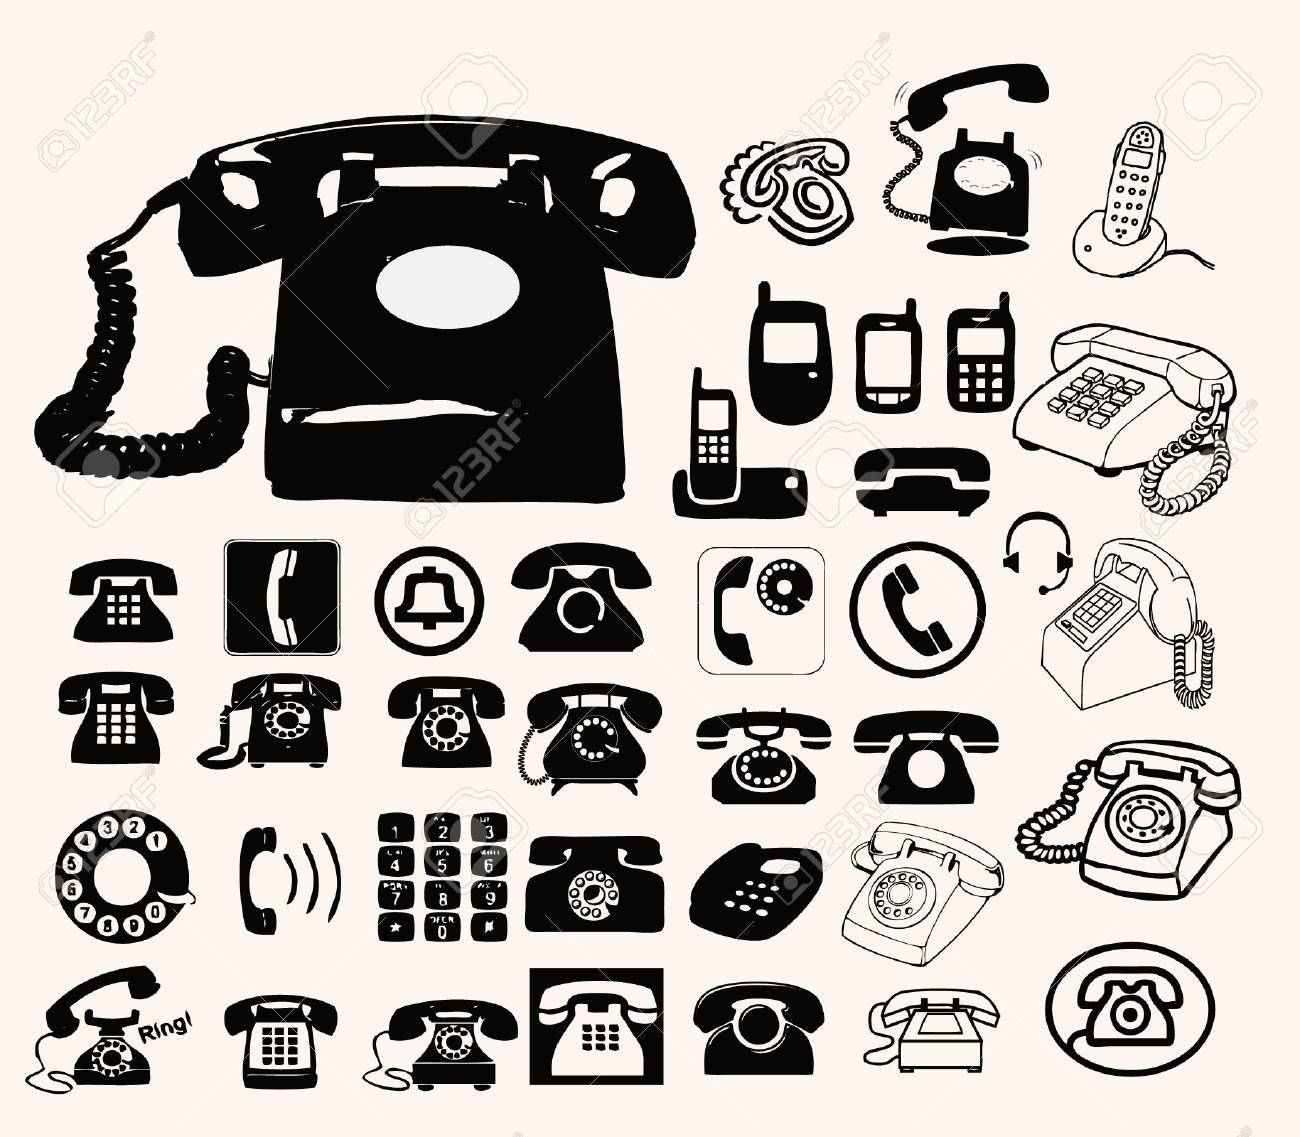 phone set Stock Vector - 15280357